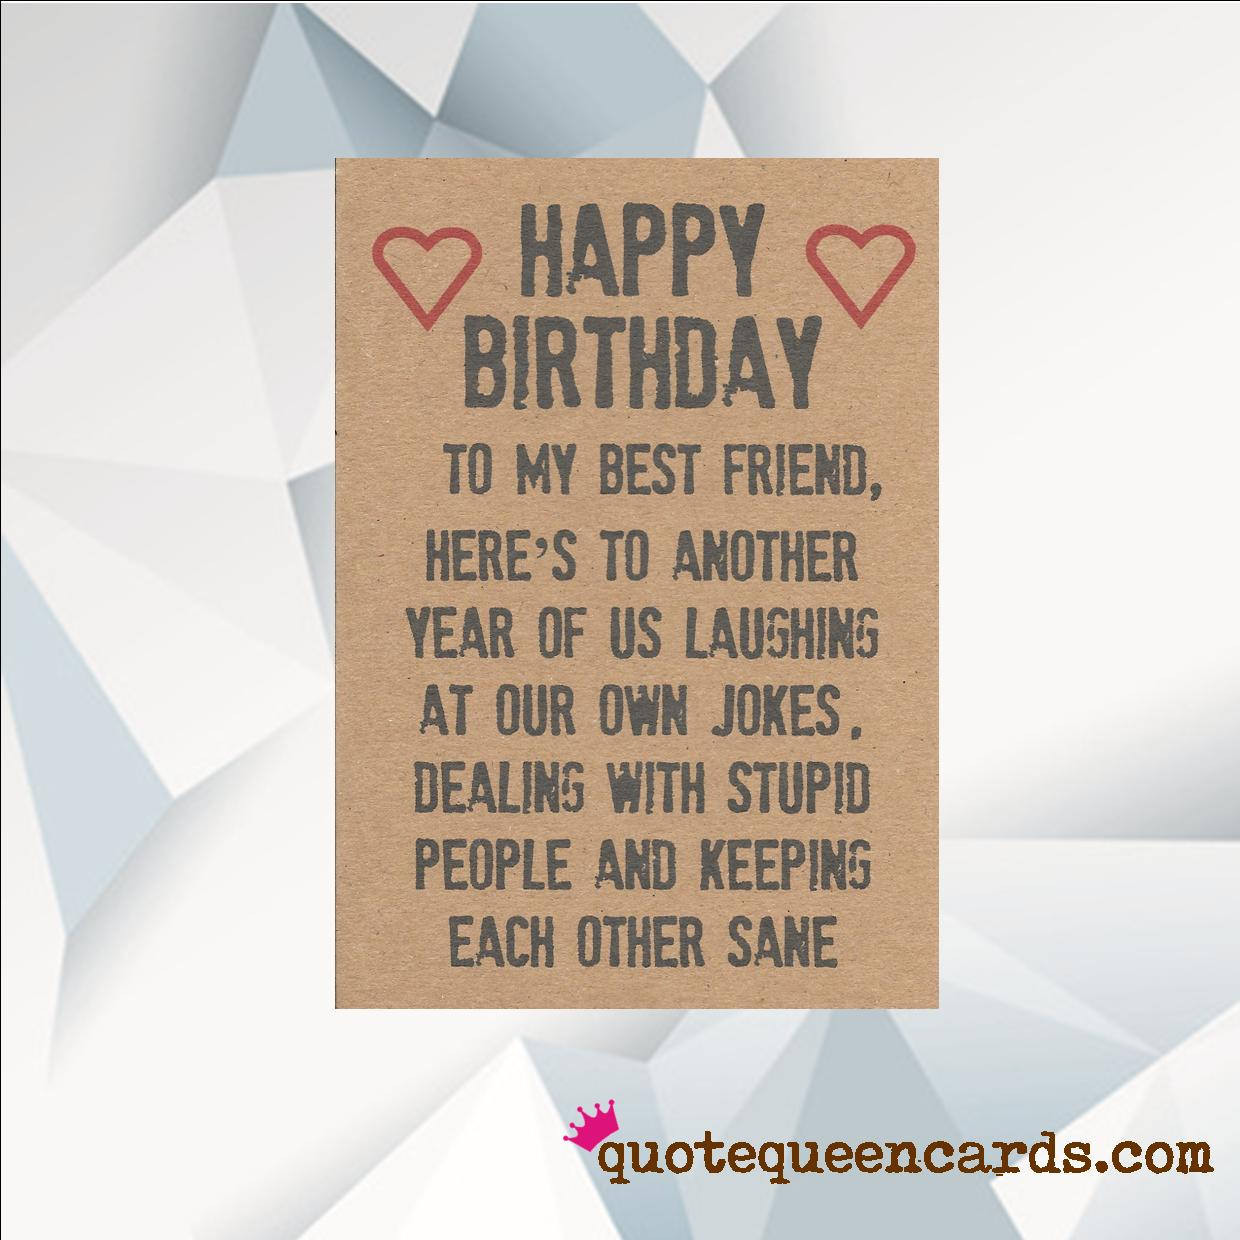 Best ideas about Happy Birthday Friend Funny . Save or Pin Happy Birthday BEST FRIEND Funny Birthday Card For Friend Now.